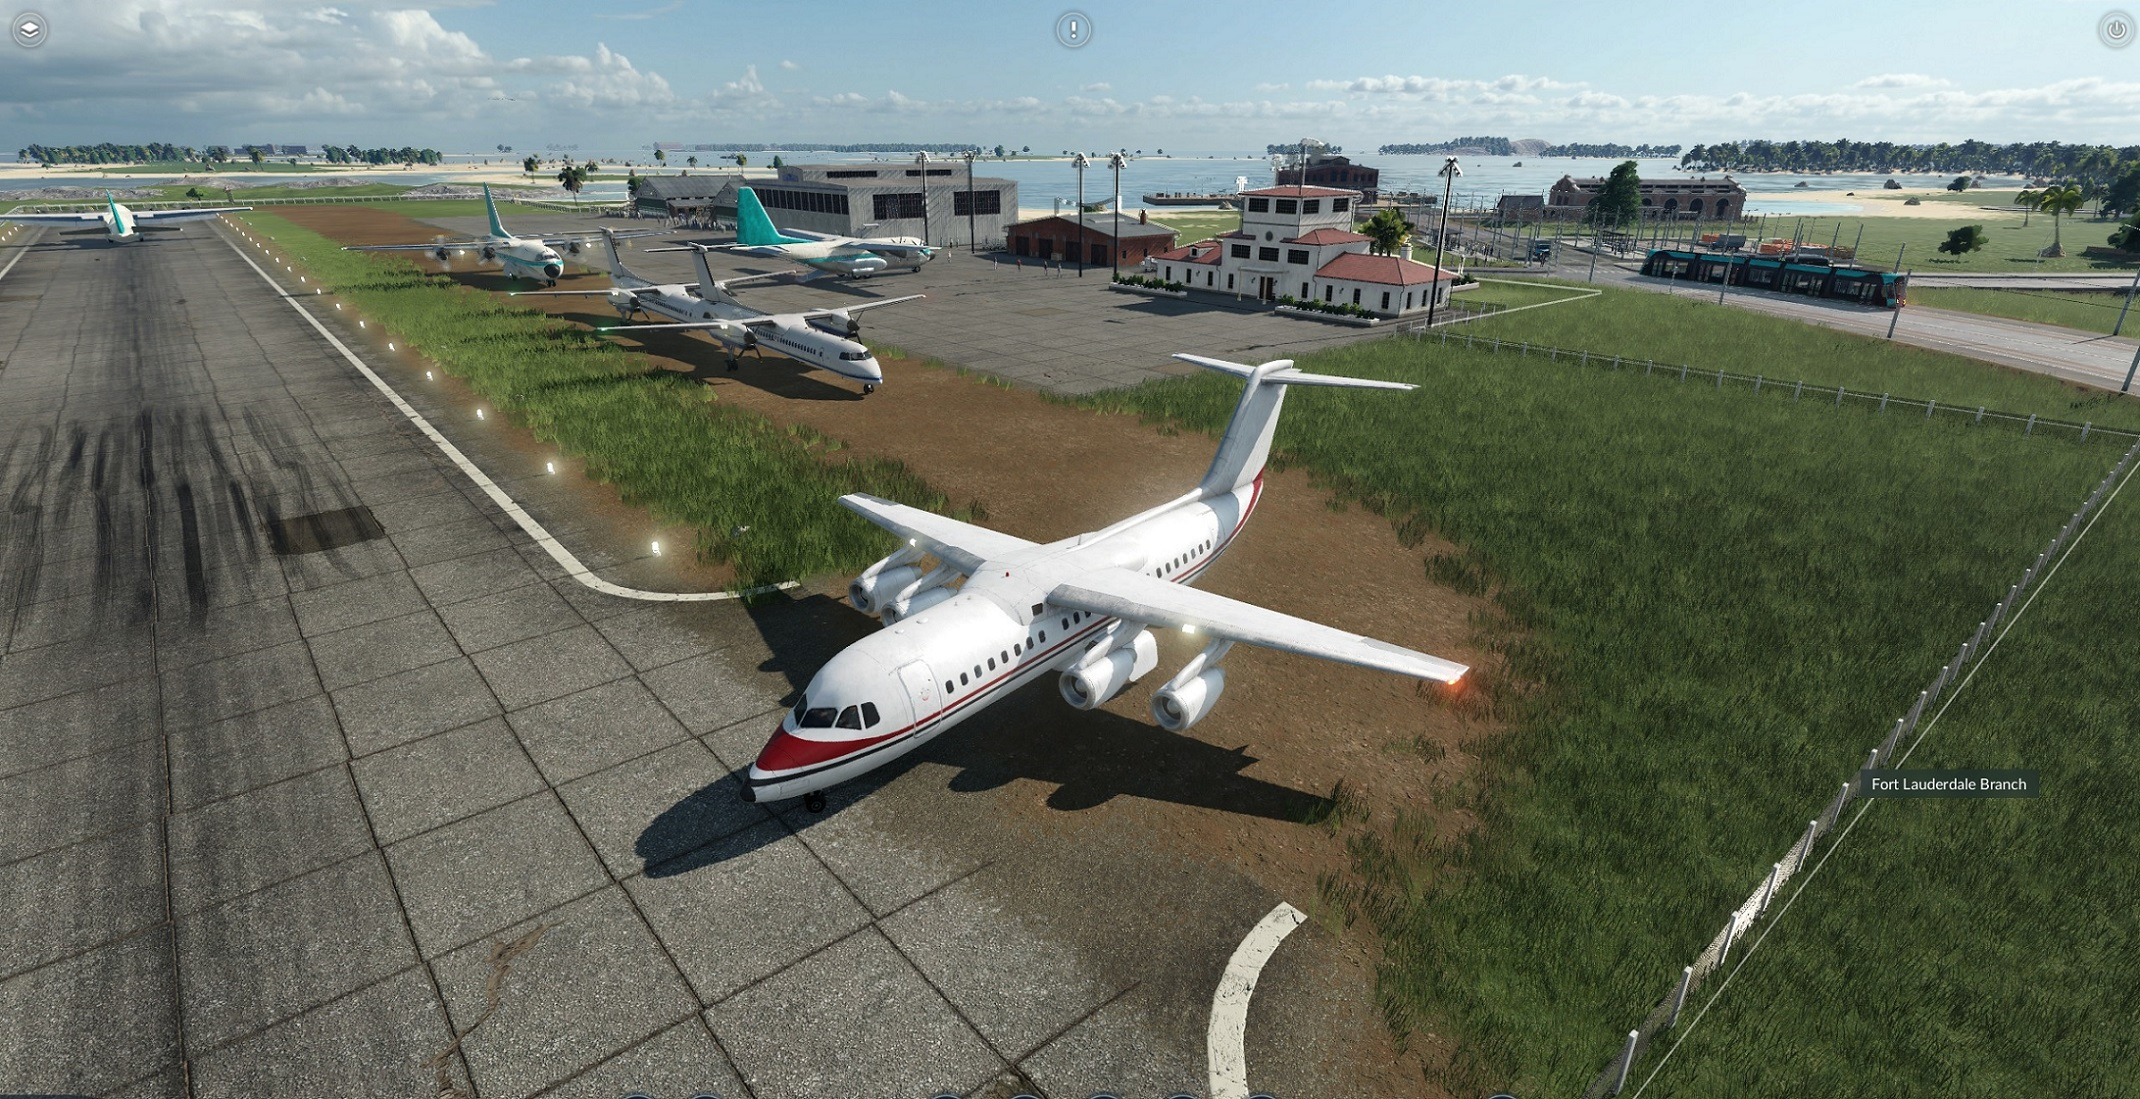 Transport Fever 2 - Bae-146 Short Field Use